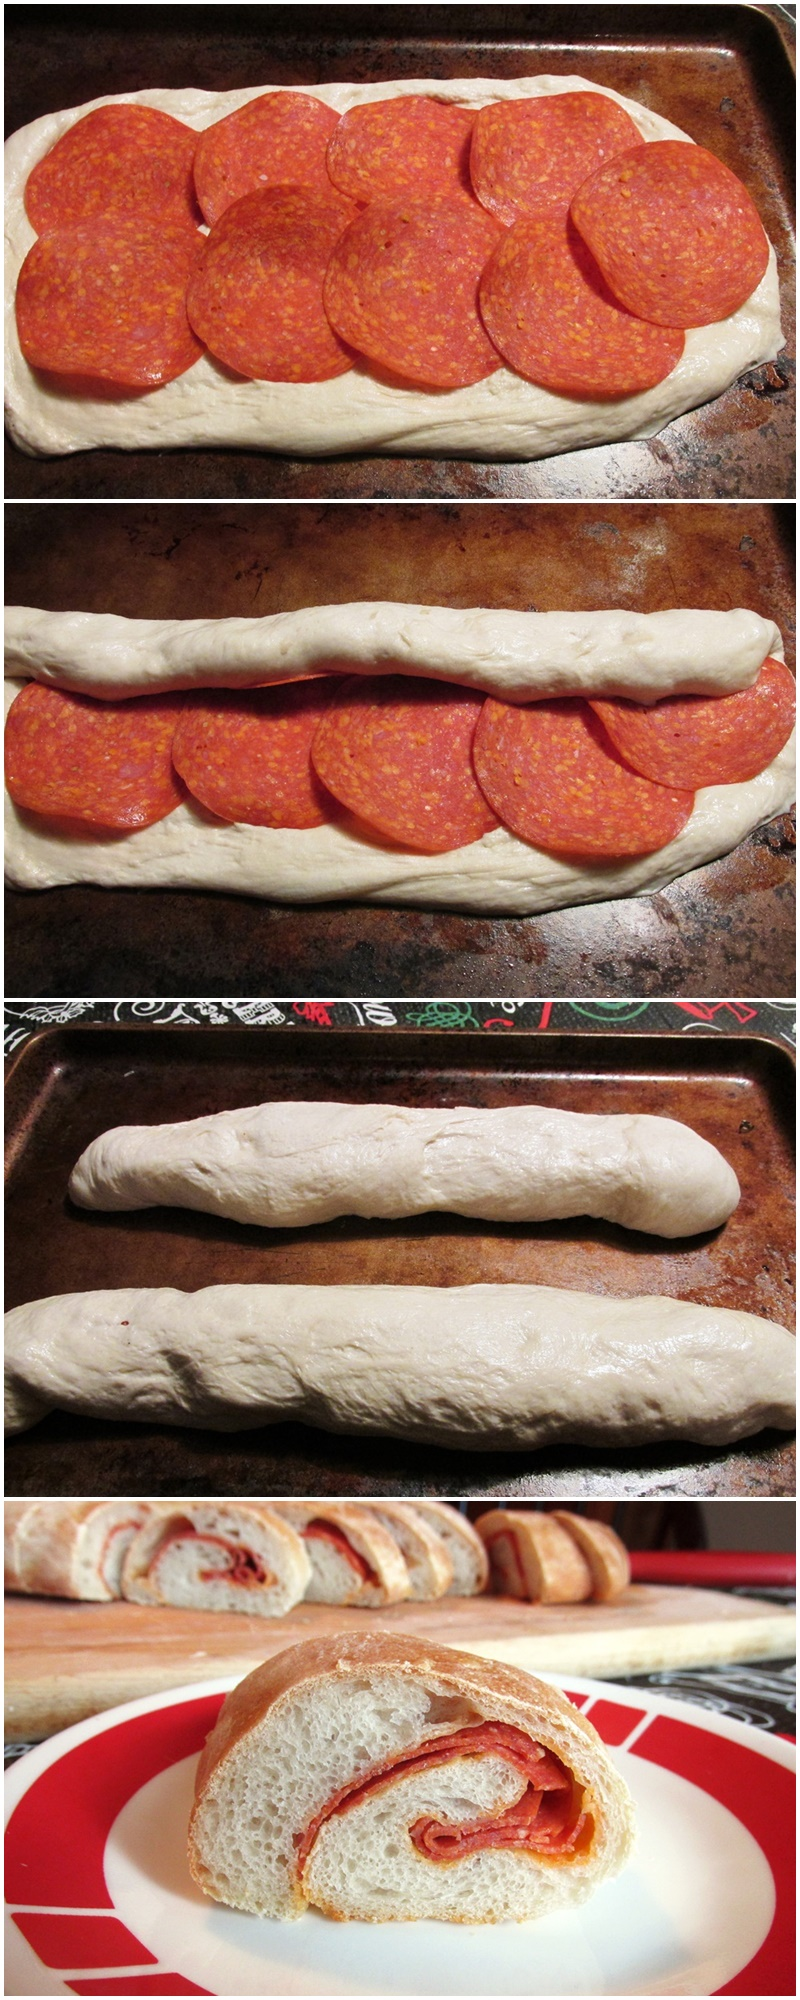 "Dairy Free Pepperoni Rolls Recipe - the pepperoni provides richness and ""cheesy"" flavor to the bread. Includes a vegan option."